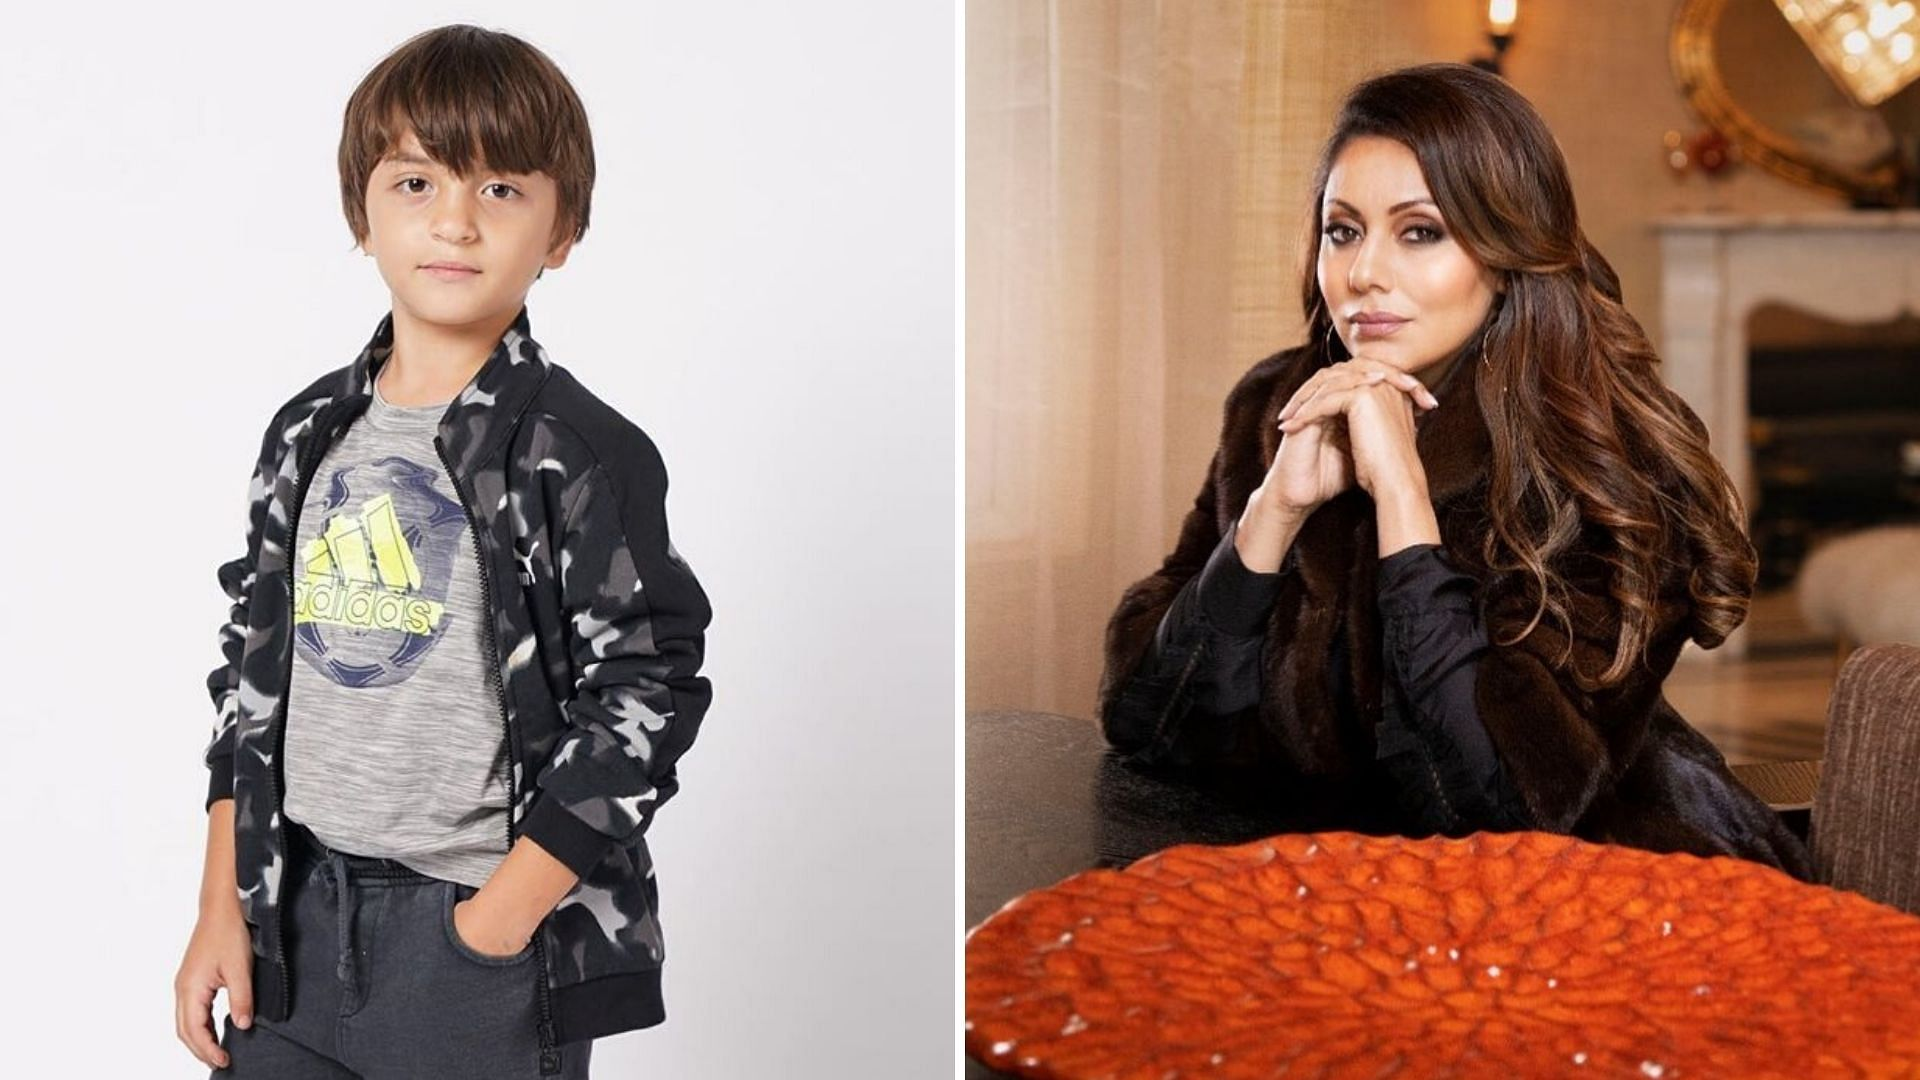 Gauri Khan Says 'AbRam Loves the Camera' and She's Right